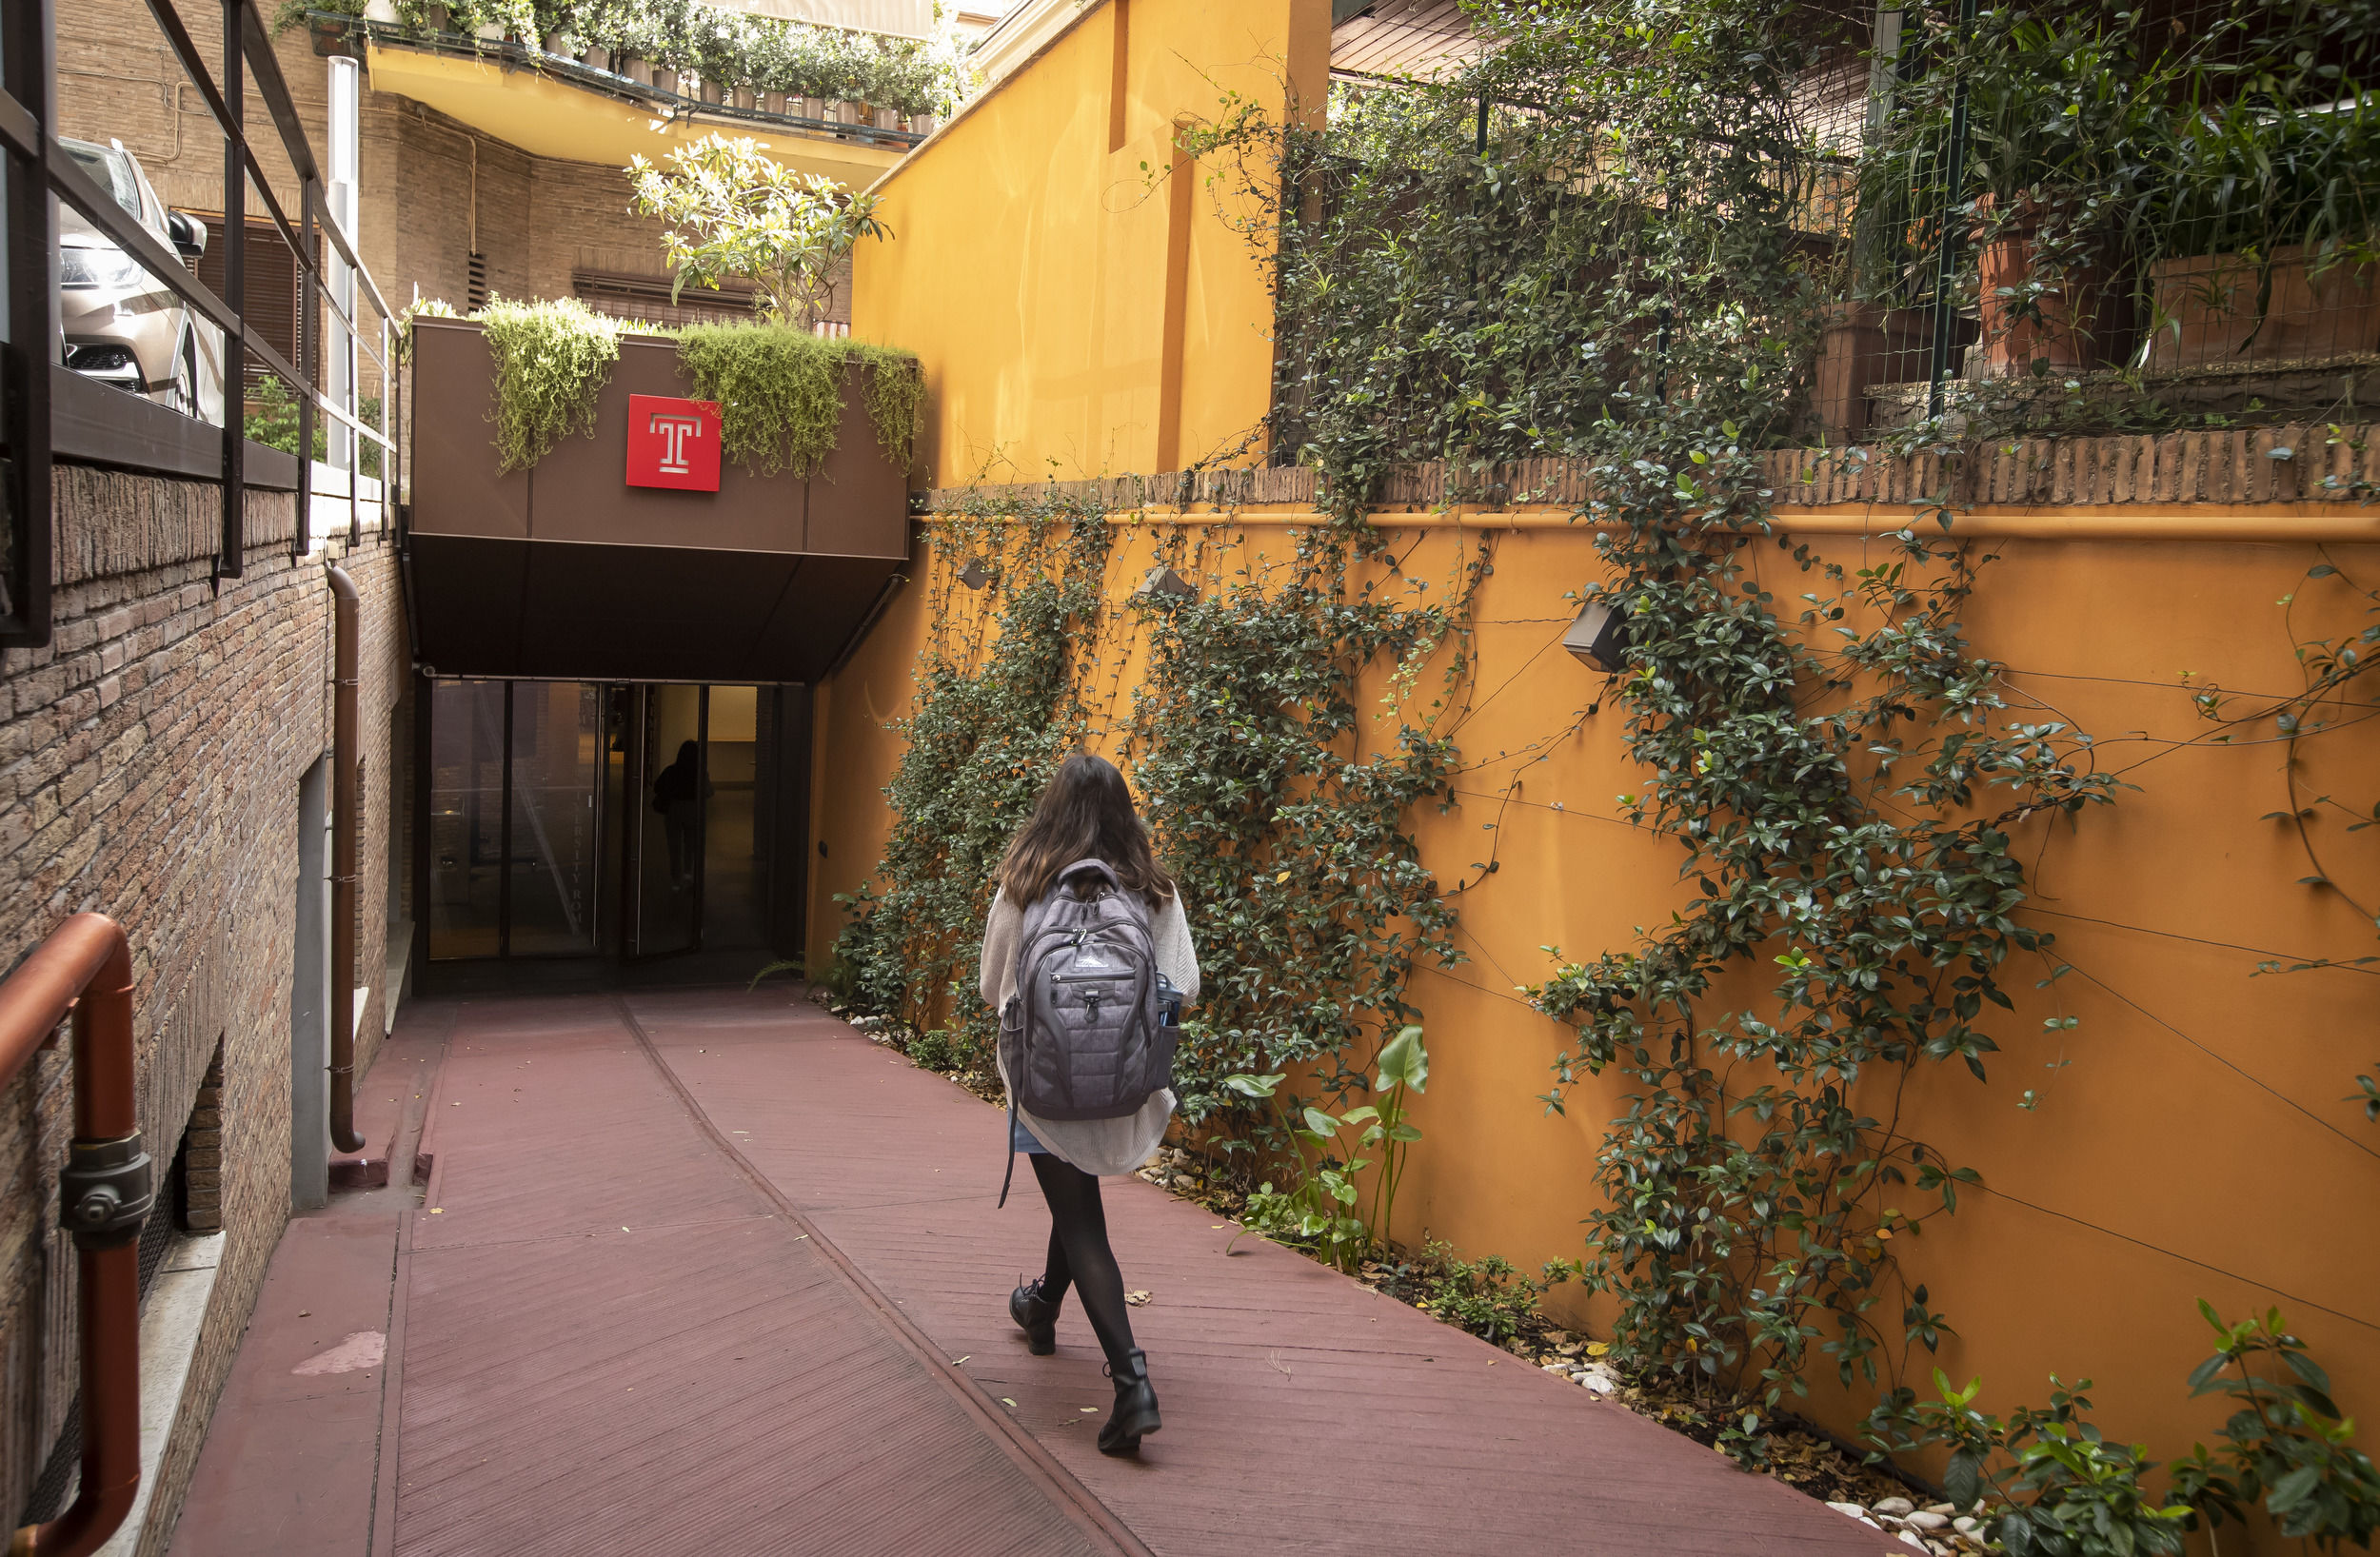 A student walking towards the entrance of a building on the Temple Rome campus.